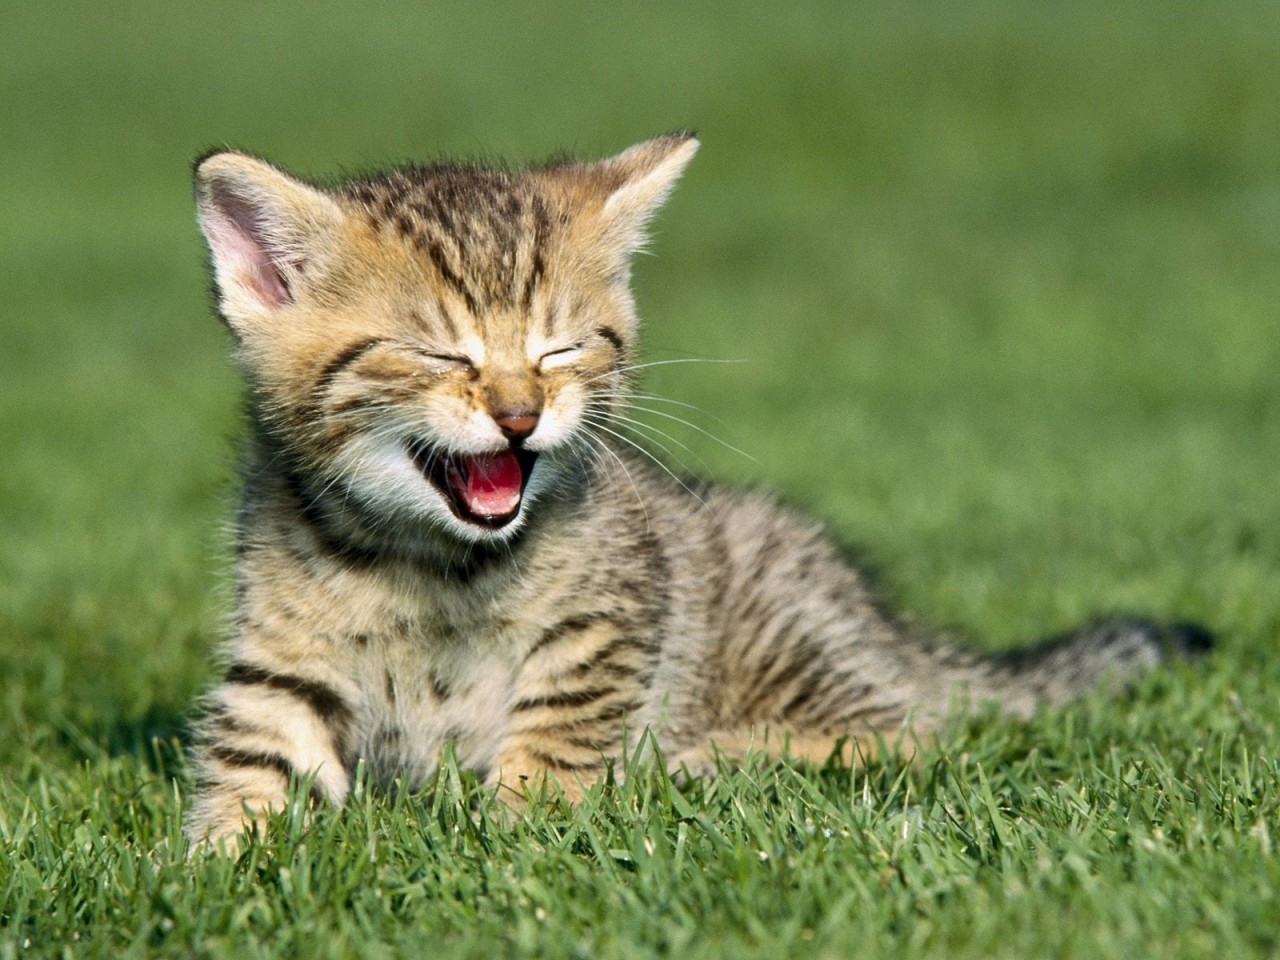 Yawning Cat Wallpaper High Definition High Resolution Hd Wallpapers